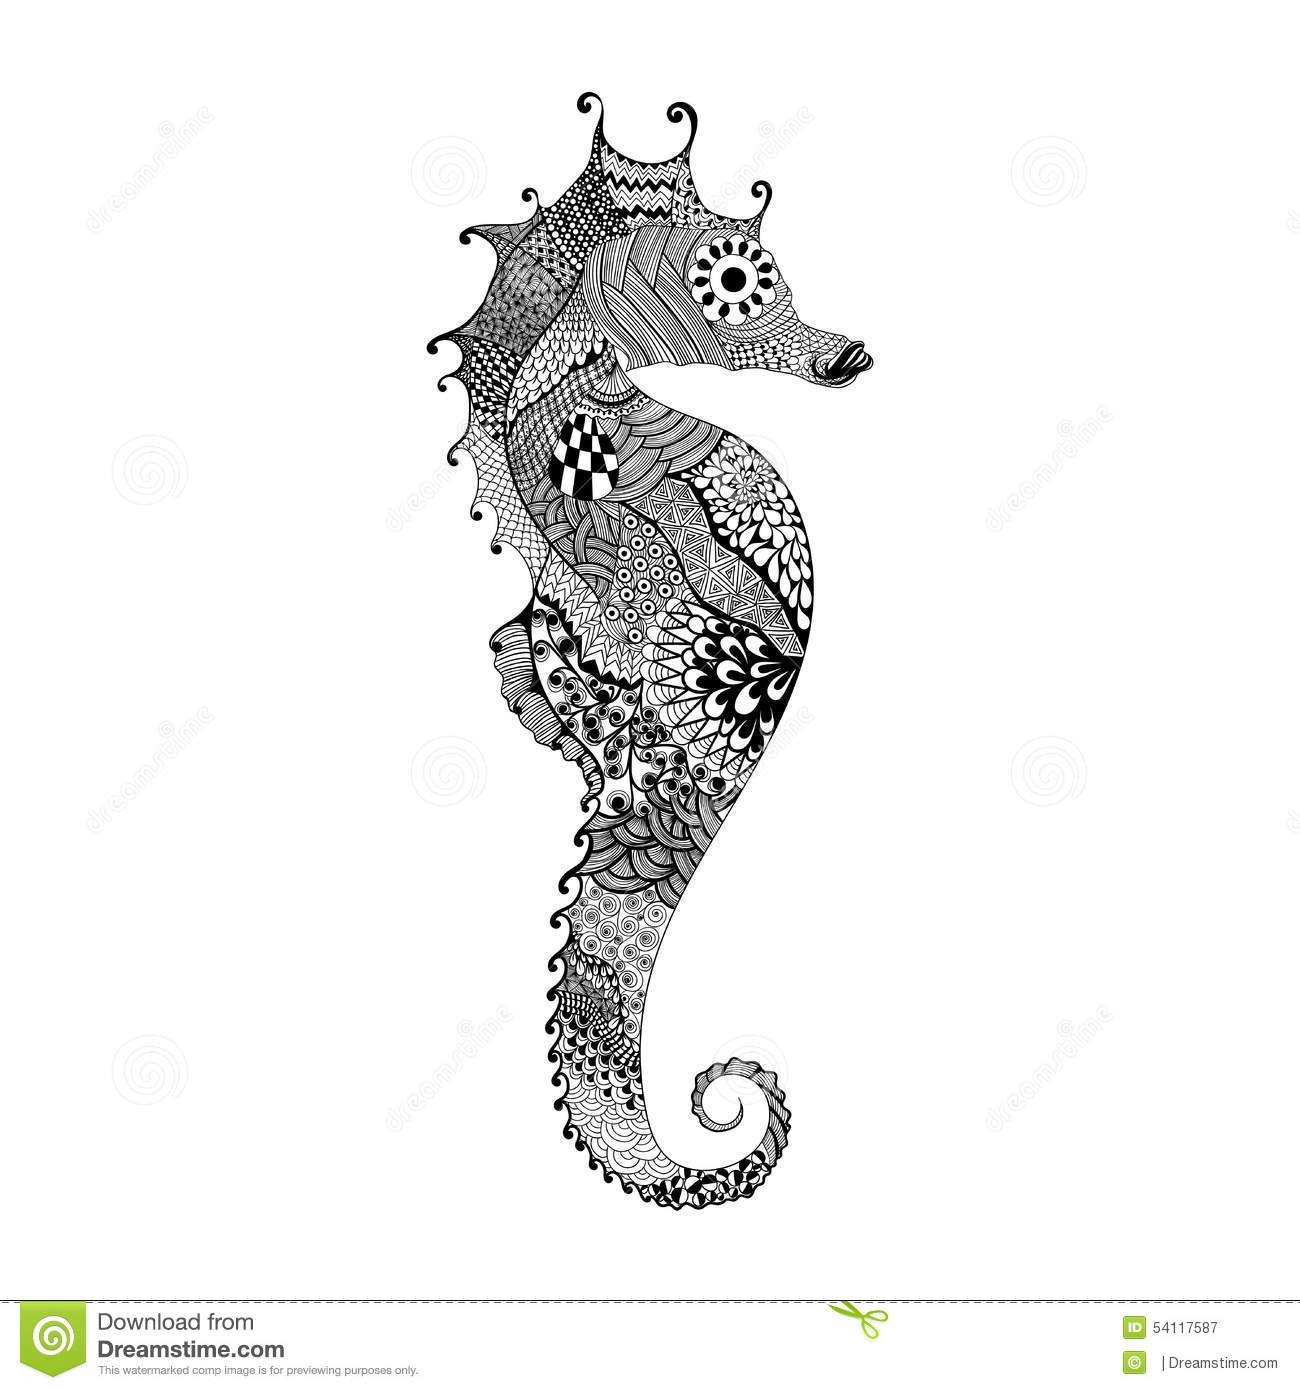 Realistic Seahorse Coloring Pages